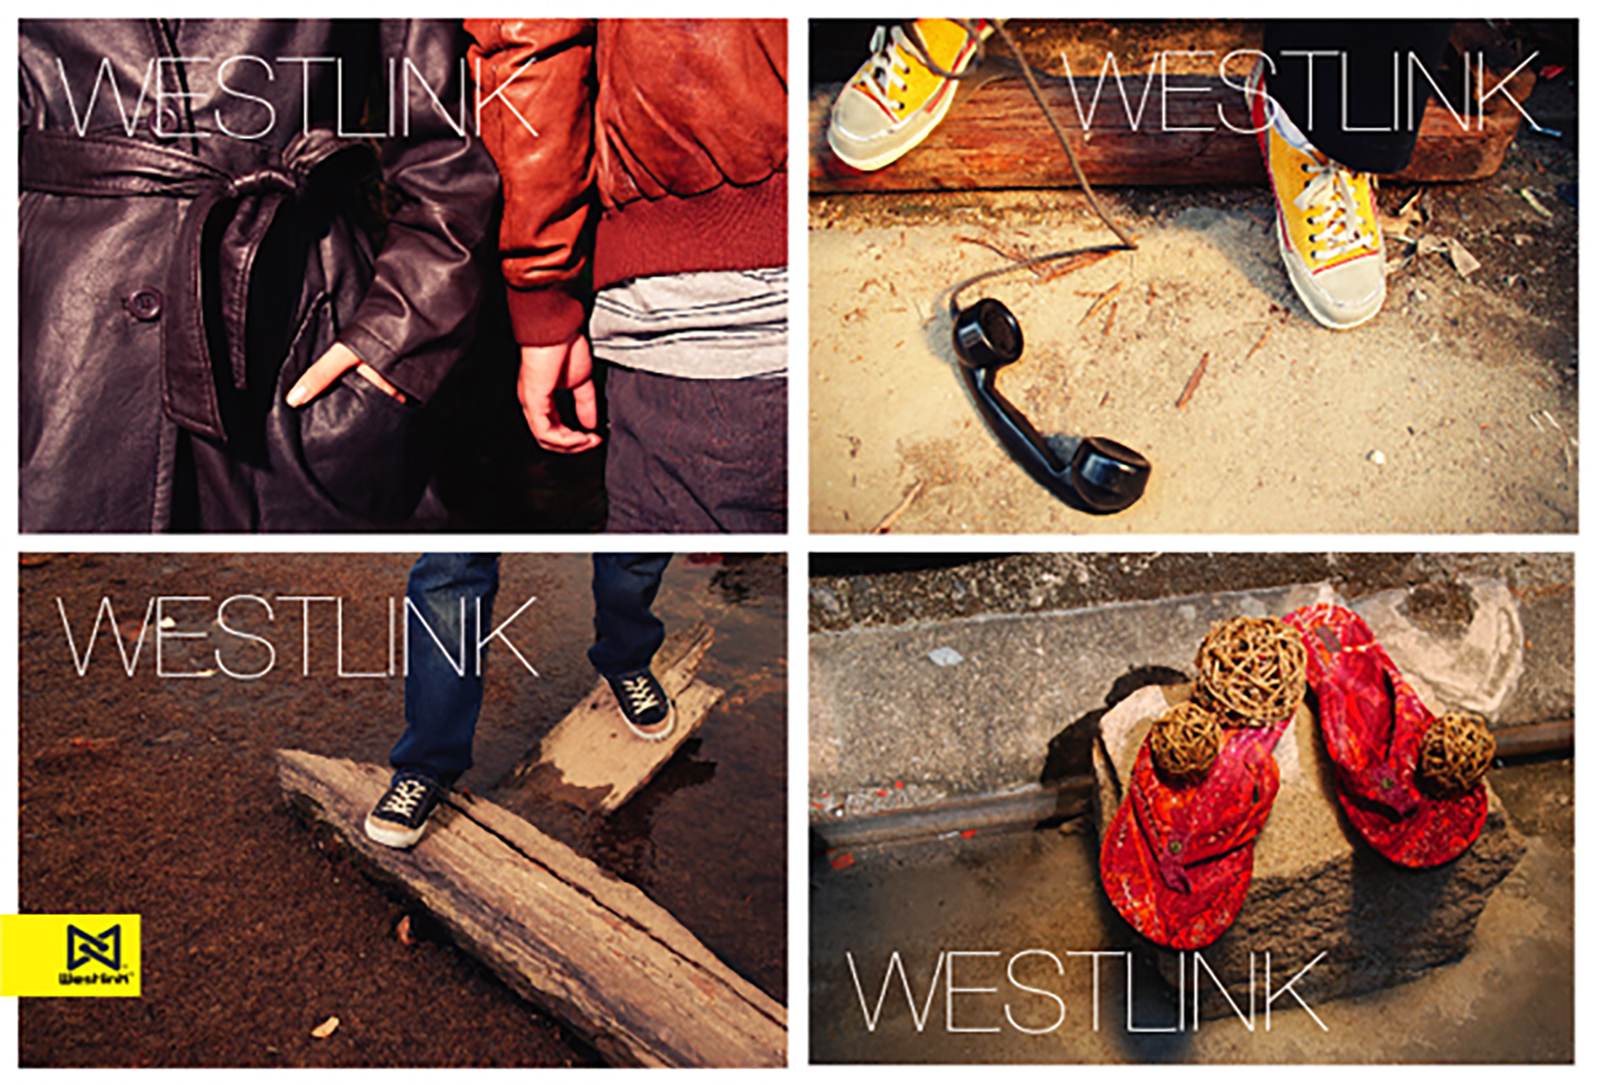 西域 | Westlink catalog & photography 2